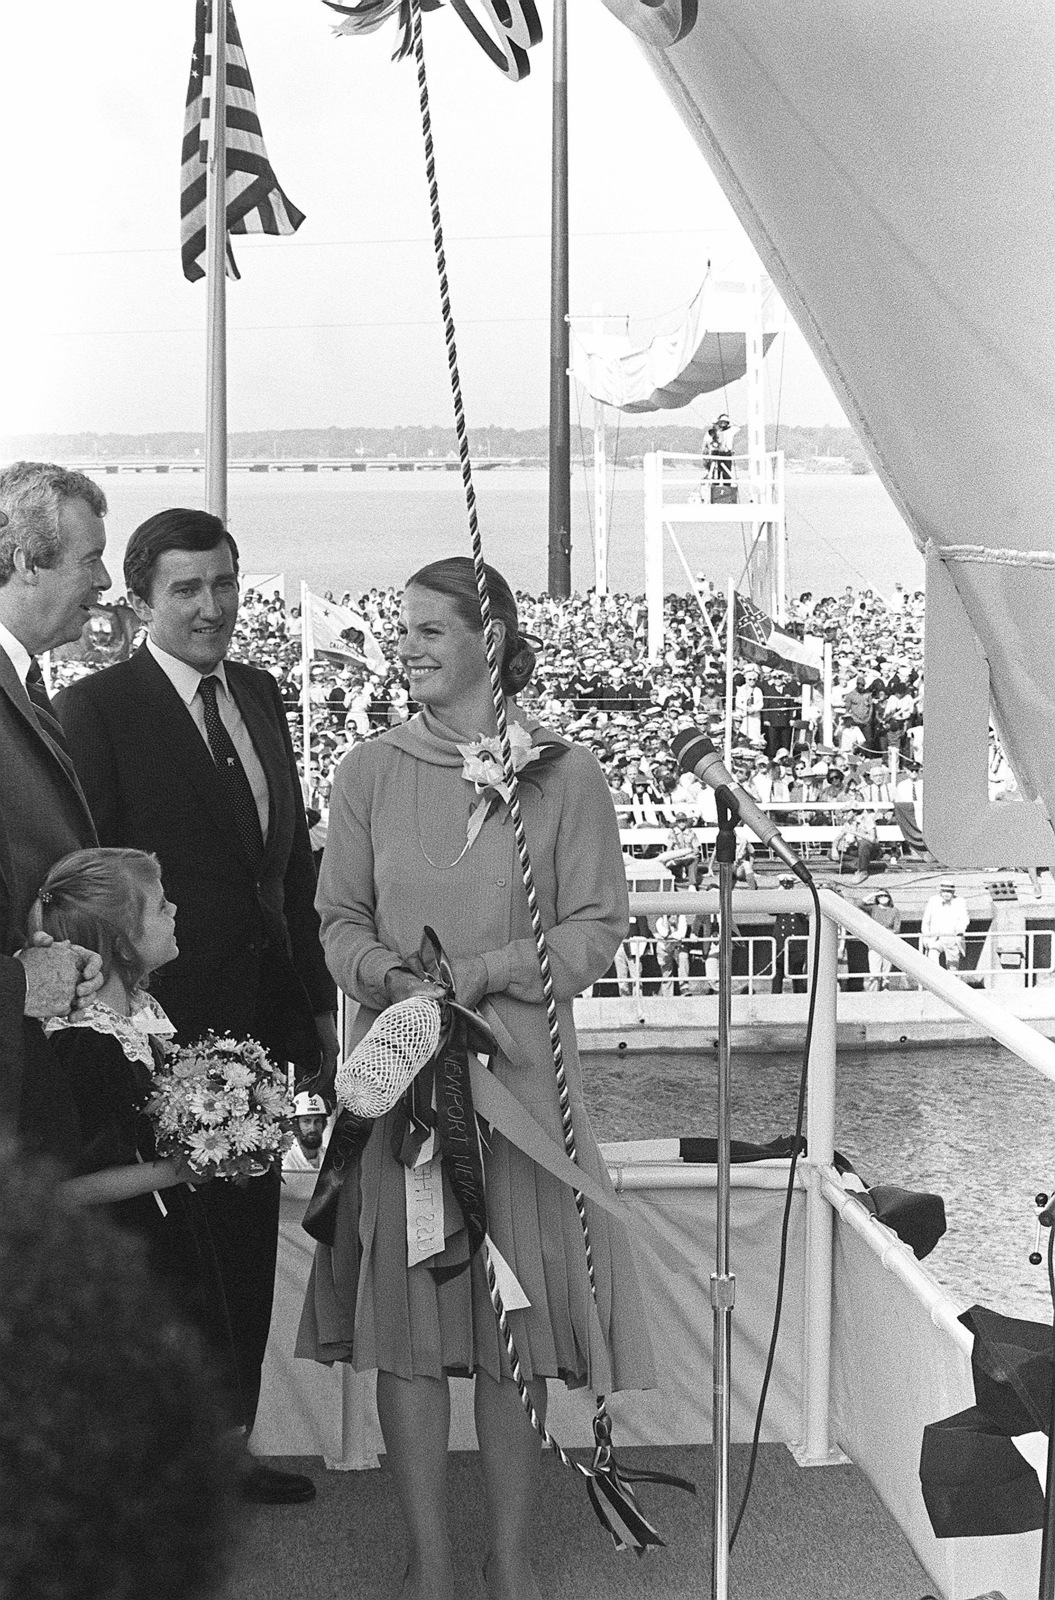 Barbara W. Lehman, wife of Secretary of the Navy John F. Lehman Jr. and Ship's Sponsor; prepares to christen the nuclear-powered aircraft carrier USS THEODORE ROOSEVELT (CVN 71) duringthe ship's launching ceremony. With Mrs. Lehman are, left to right, Edward J. Campbell, Newport News Shipbuilding; Lehman's daughter, Alexandra, Maid of Honor; and Secretary Lehman